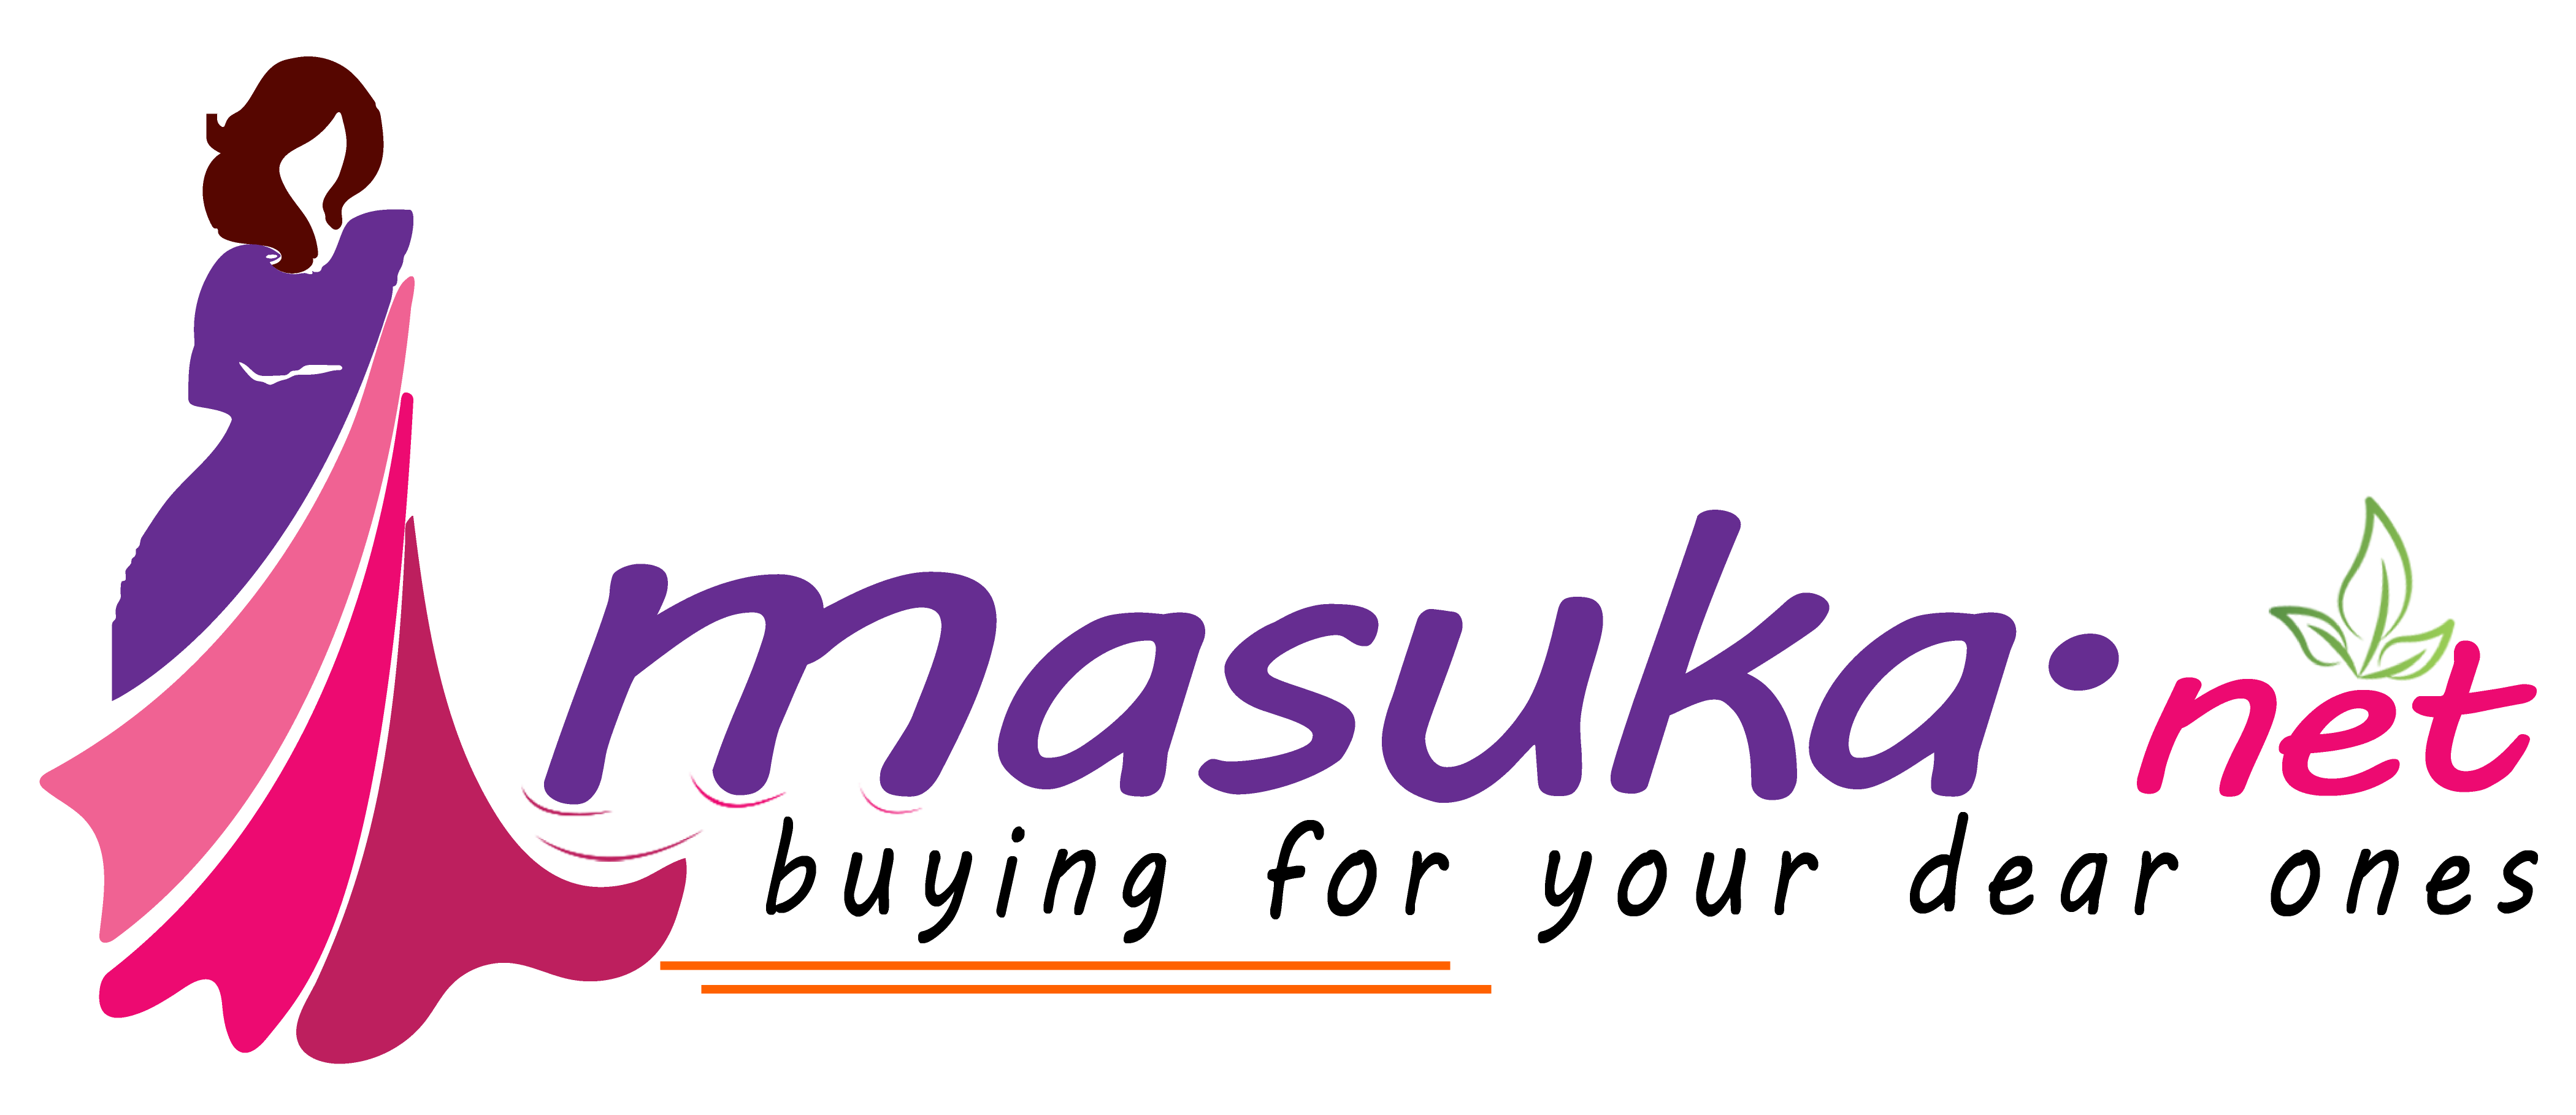 Masuka.net - Enjoy The Best of Online Shopping in Bangladesh